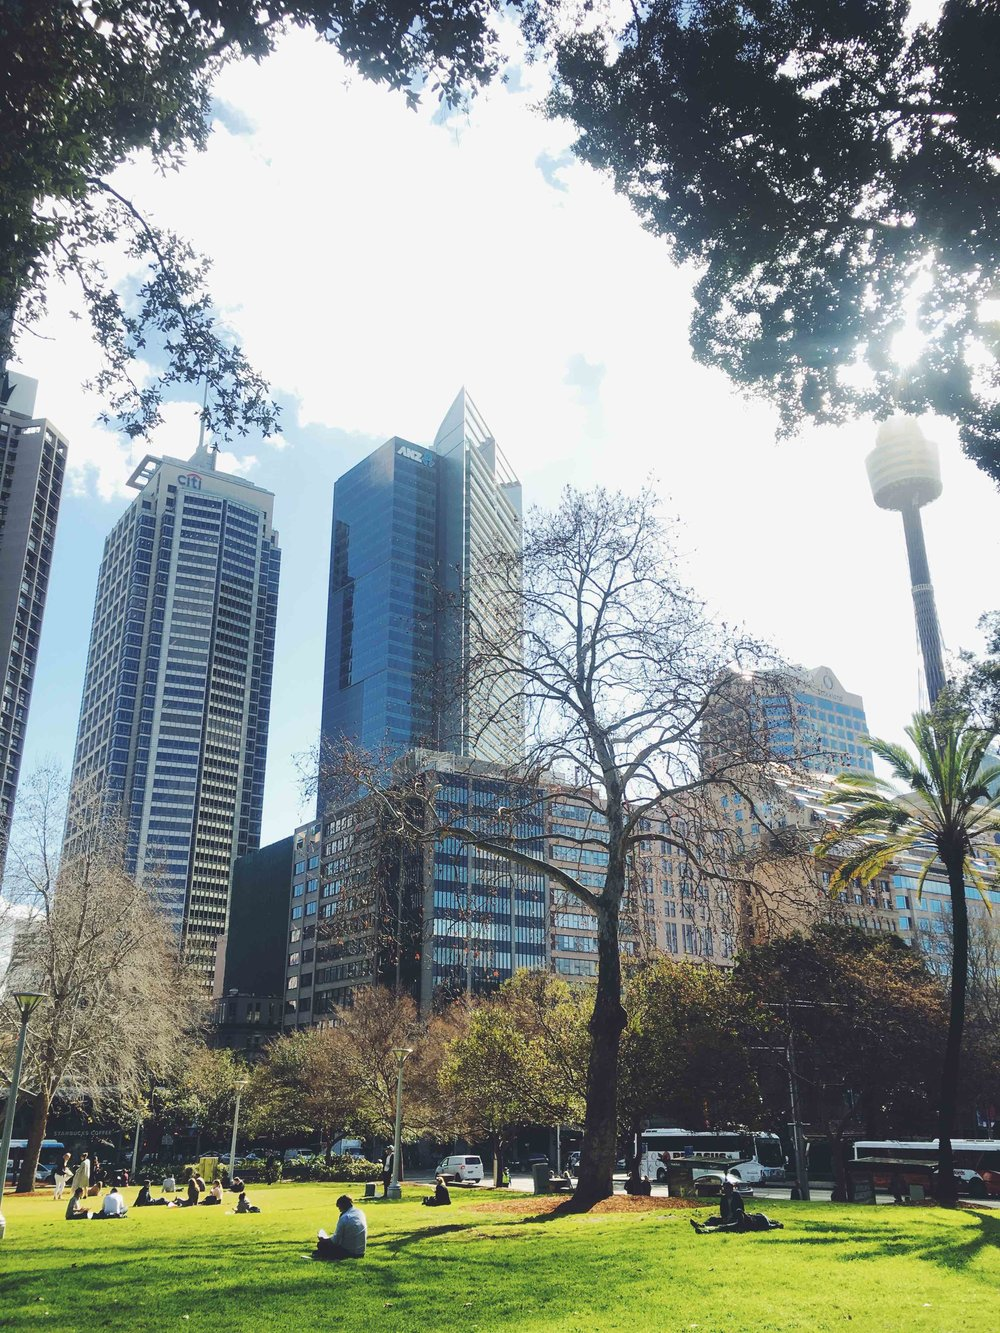 Lunch time at Hyde Park, in Sydney CBD during the Winter months. Photo: Marine Raynard